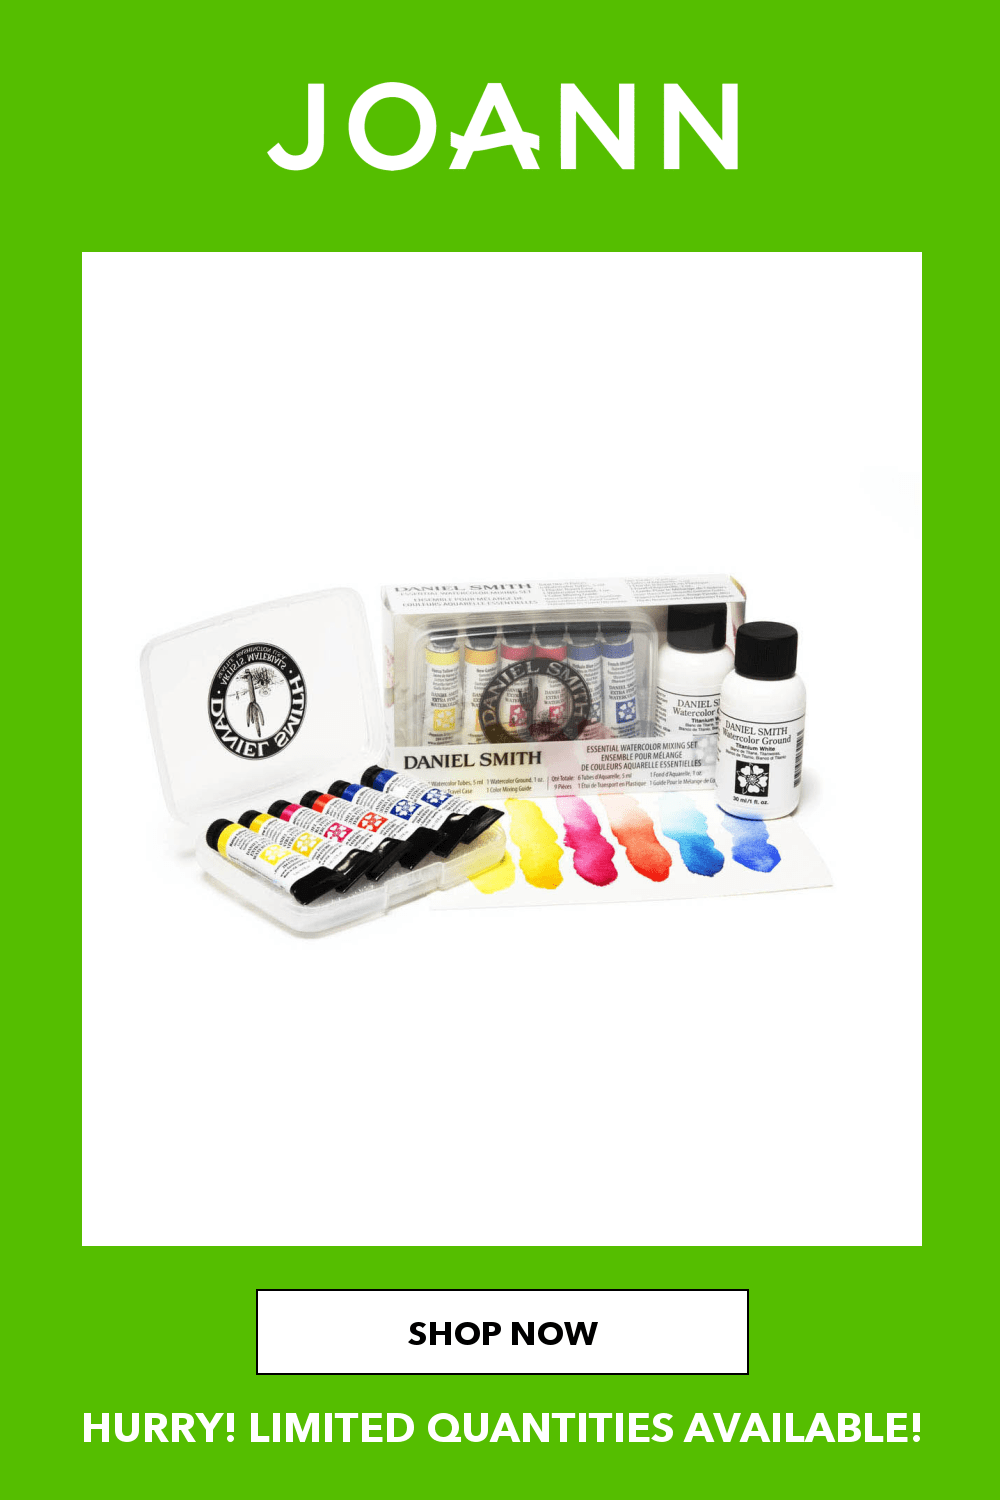 This Extra - Fine Watercolor set features colors that have outstanding color strength, extremely vibrant colors and excellent brushing properties. These colors were chosen because of their ability to mix together without creating mud. Colors include hansa yellow light, new gamboge, quinacridone rose, pyrrole scarlet, pthalo blue green shade and French ultramarine.5.3 x 1.5 x 3.05Contains six 5ml tubes of colorPigments procured from all over the worldManufactured in Seattle, Washington - painting